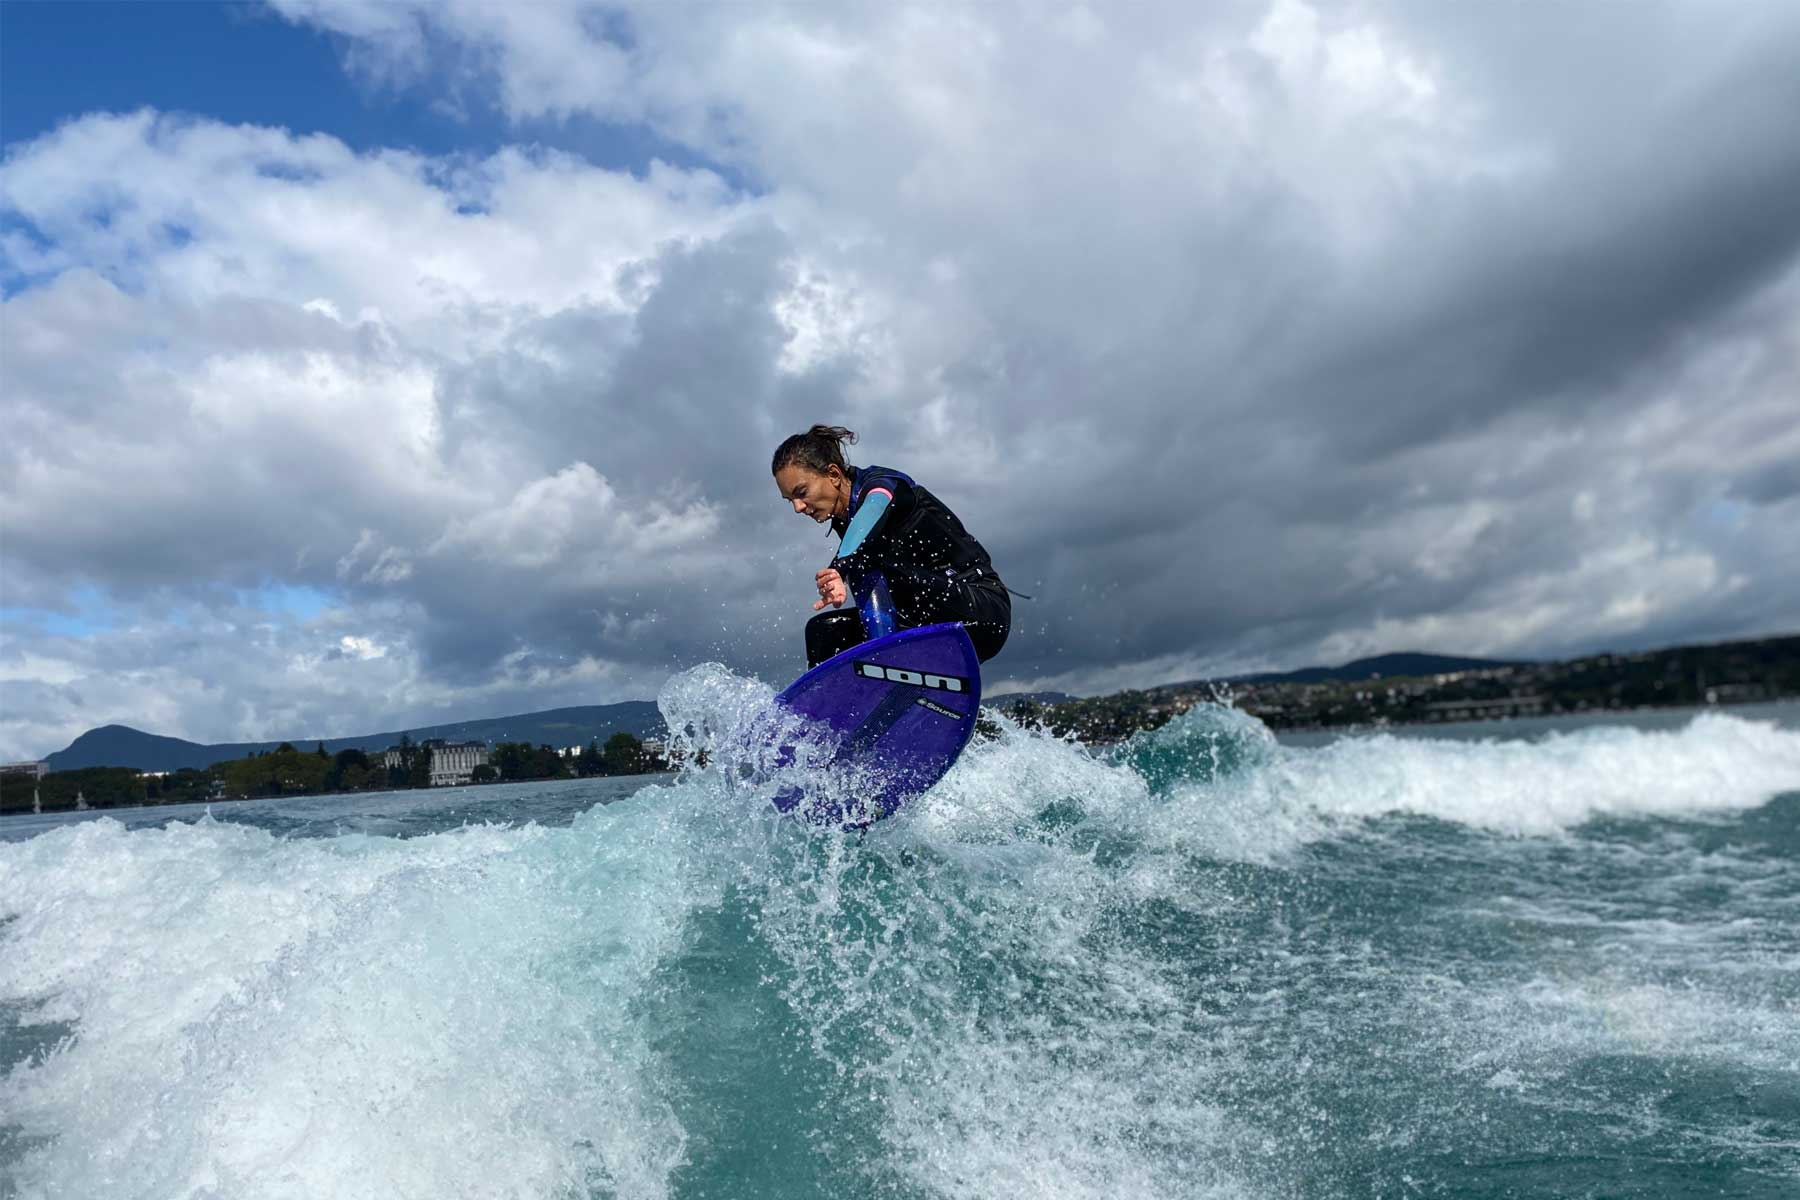 Wake Arena, cours de wakesurf à Annecy